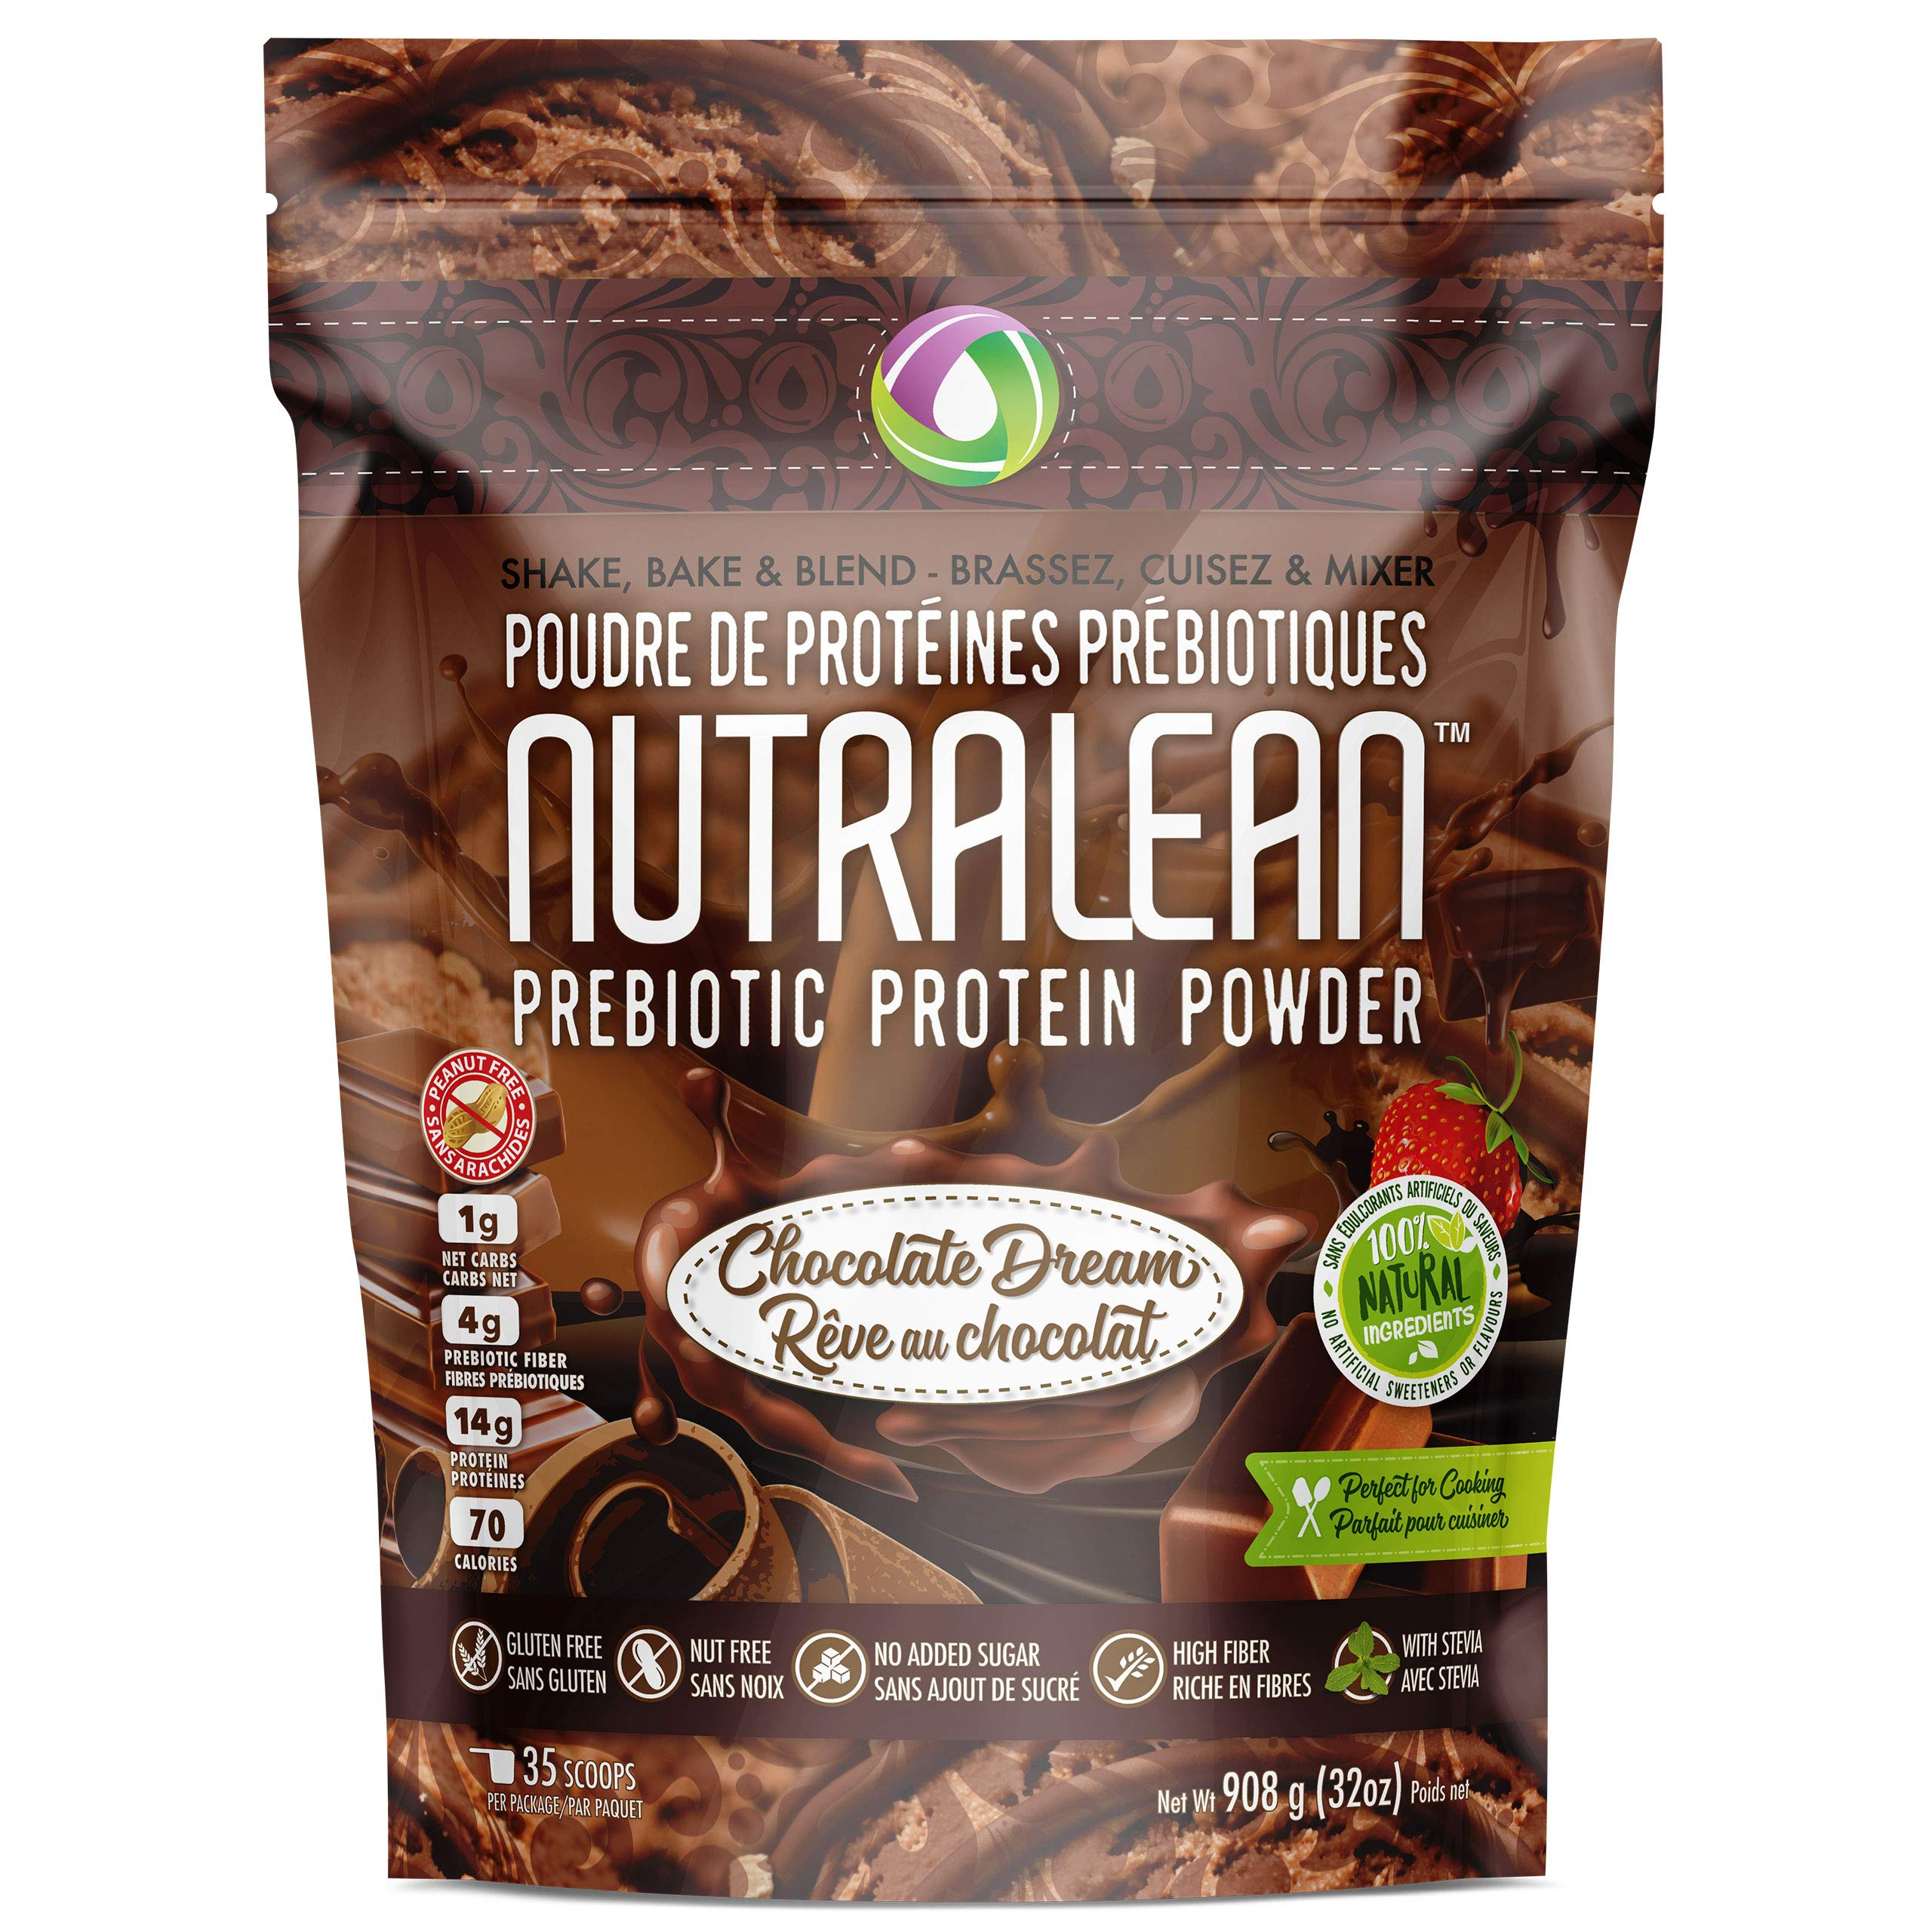 NUTRALEAN Chocolate Dream Prebiotic Protein Powder- 100% All Natural | Peanut-Free | Nut-Free | Gluten-Free | Soy-Free | NO Artificial Sweeteners | Grass Fed Whey | Ideal Keto Shake & Fiber Supplement by Nutracelle